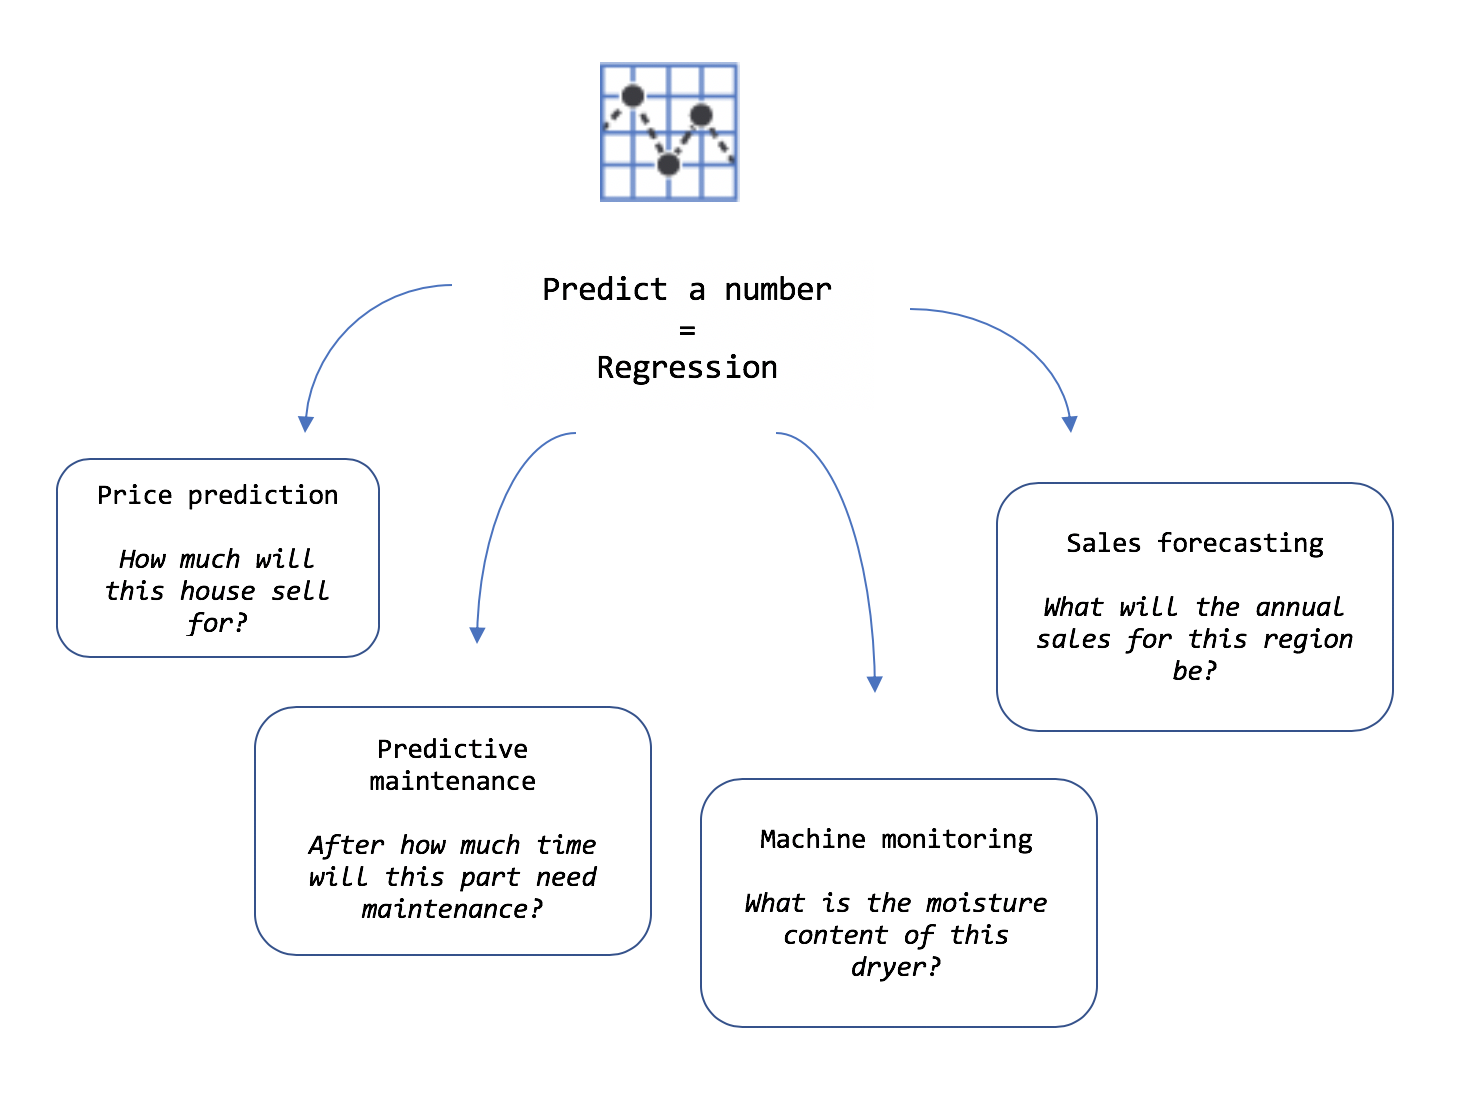 What is Model Builder and how does it work? - ML NET